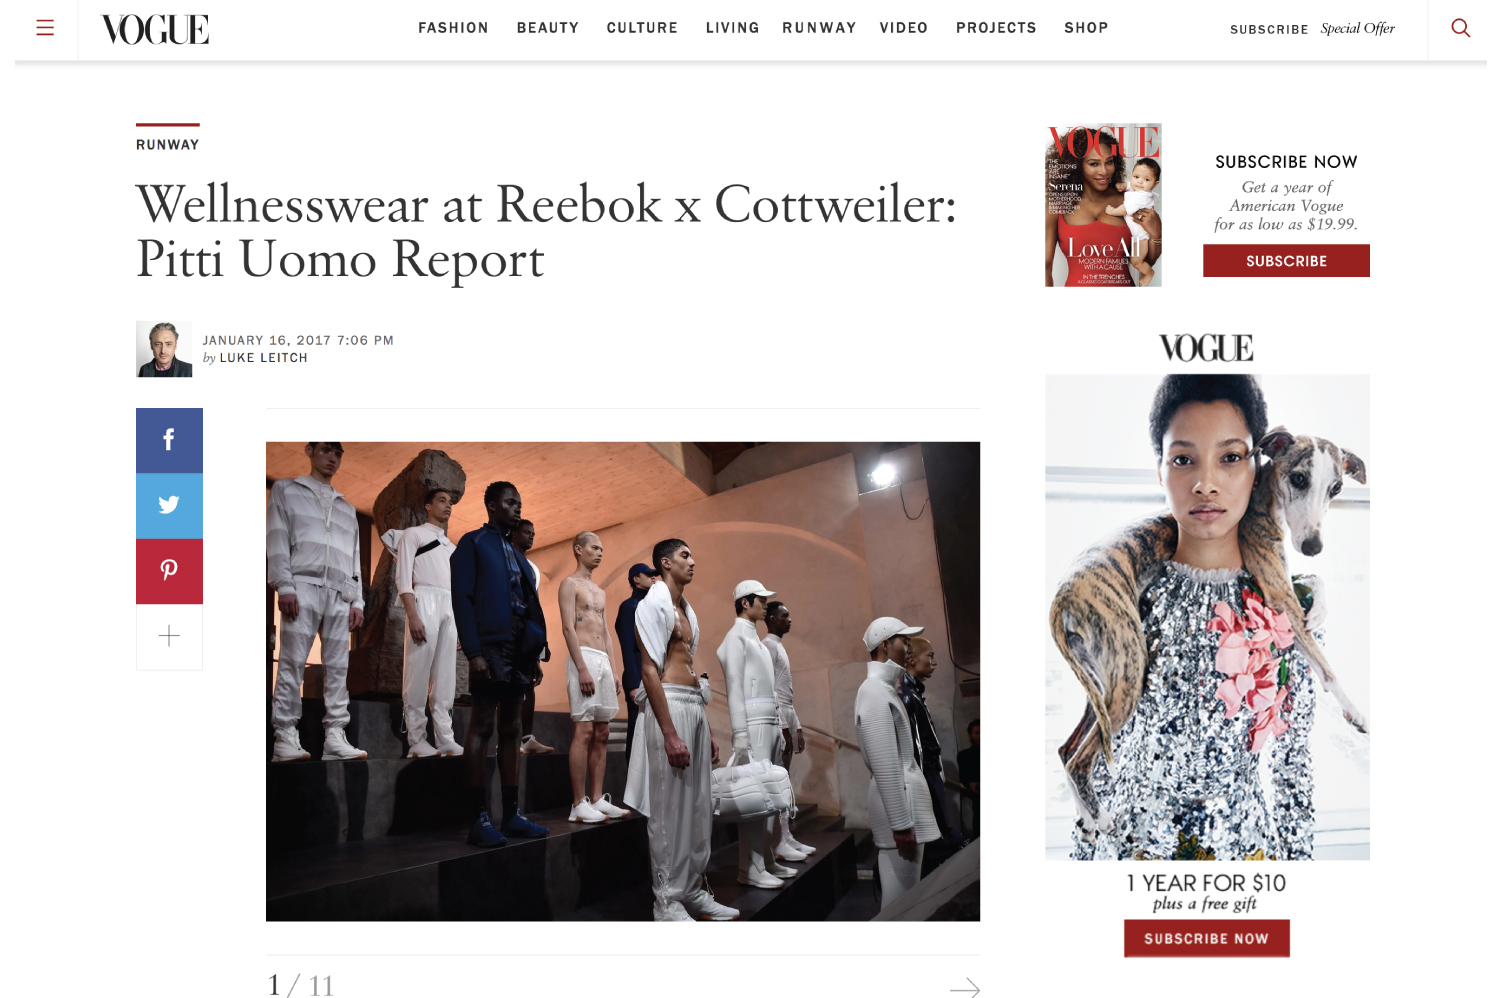 VOGUE | Wellnesswear at Reebok x Cottweiler: Pitti Uomo Report, by Luke Leitch, January 16, 2017